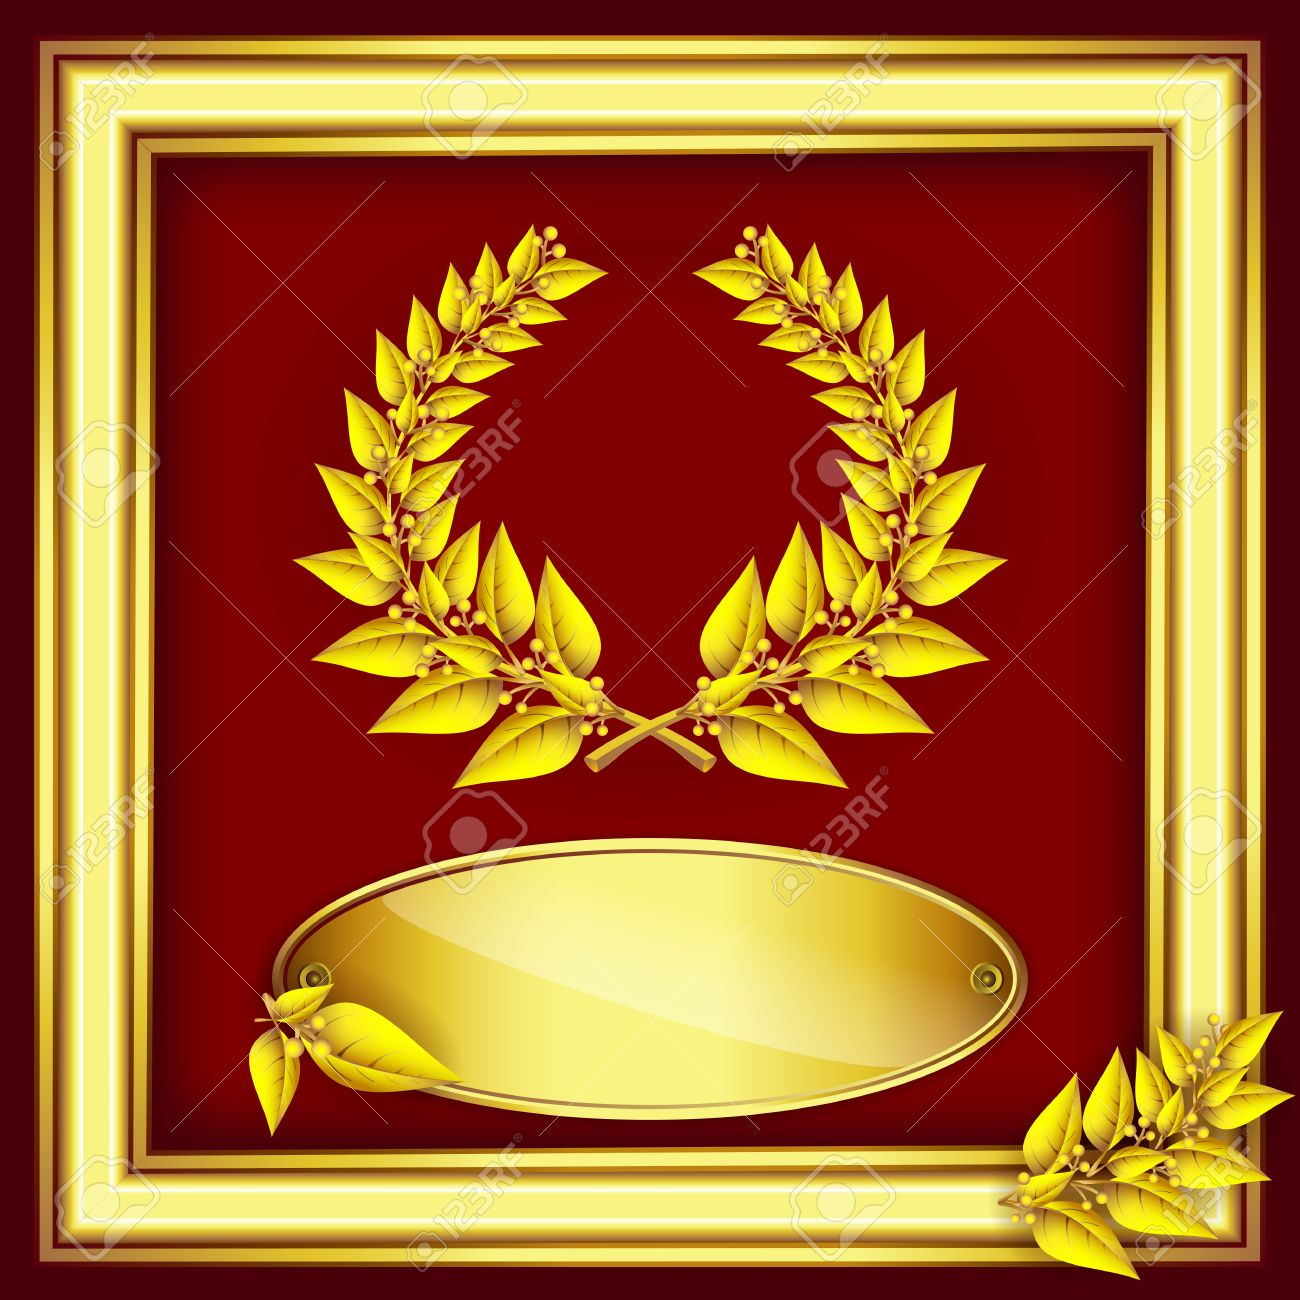 Award or jubilee certificate gold laurel wreath label for text award or jubilee certificate gold laurel wreath label for text and frame on red yadclub Image collections